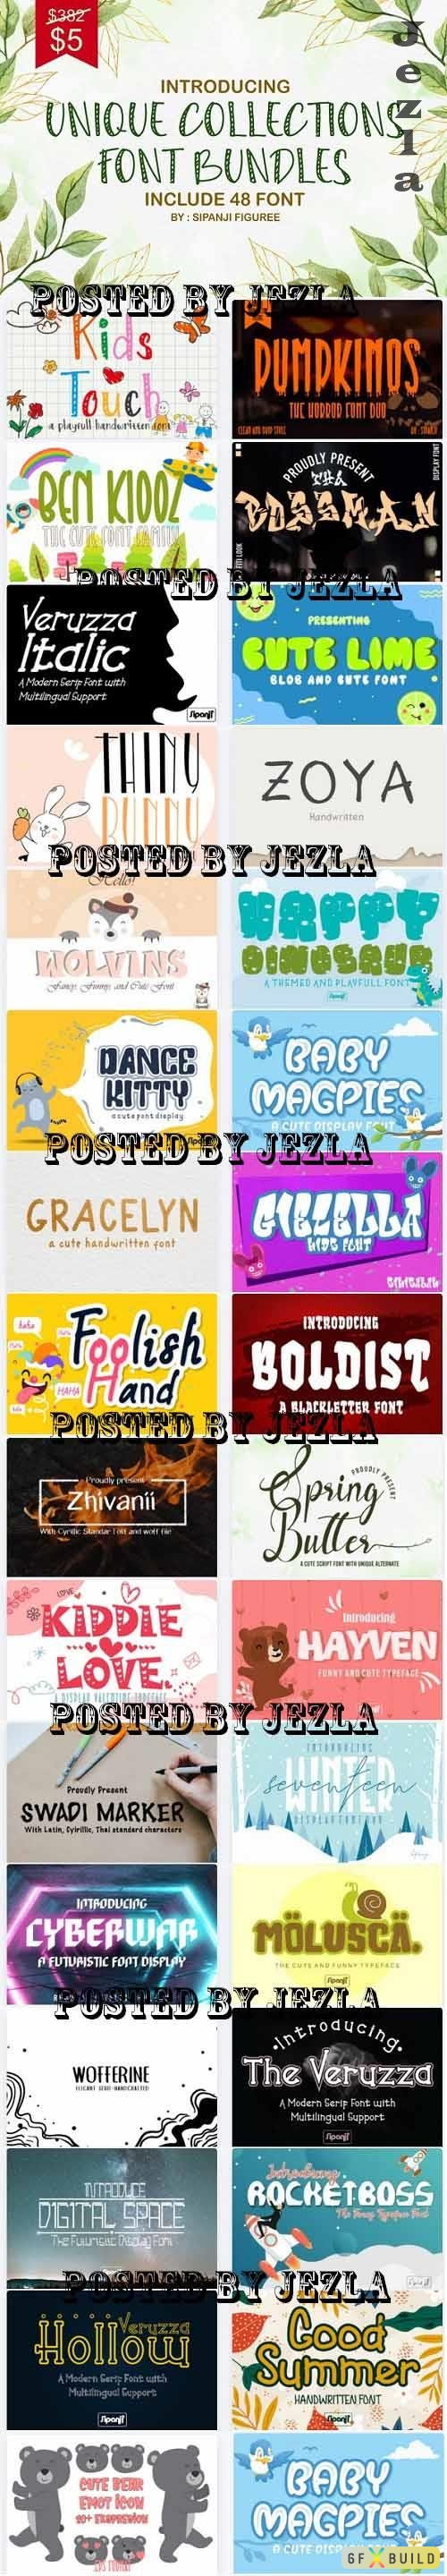 Unique Collections Display Font - 31 Premium Fonts and Graphics